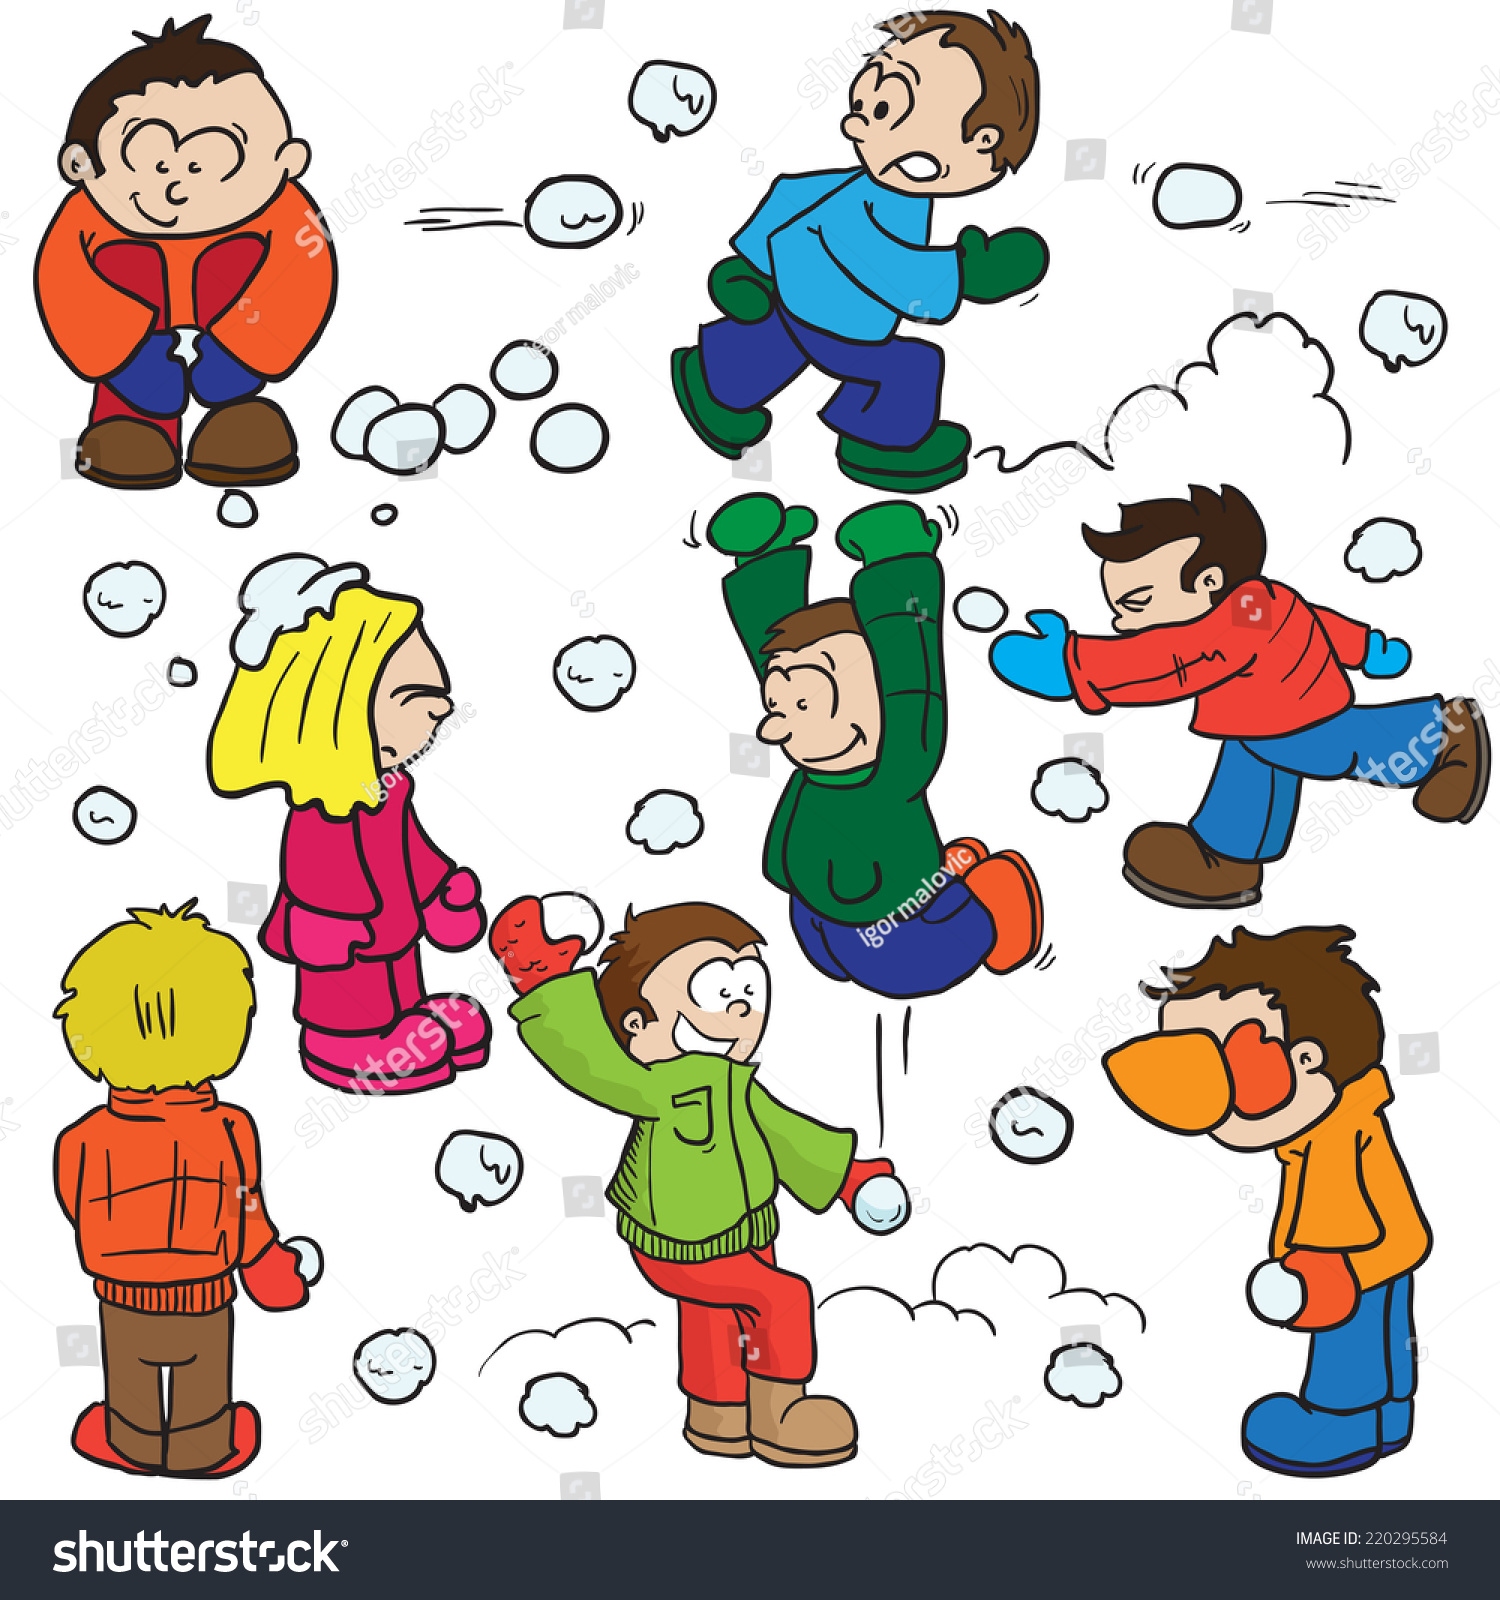 snowball fight cartoon illustration stock illustration 220295584